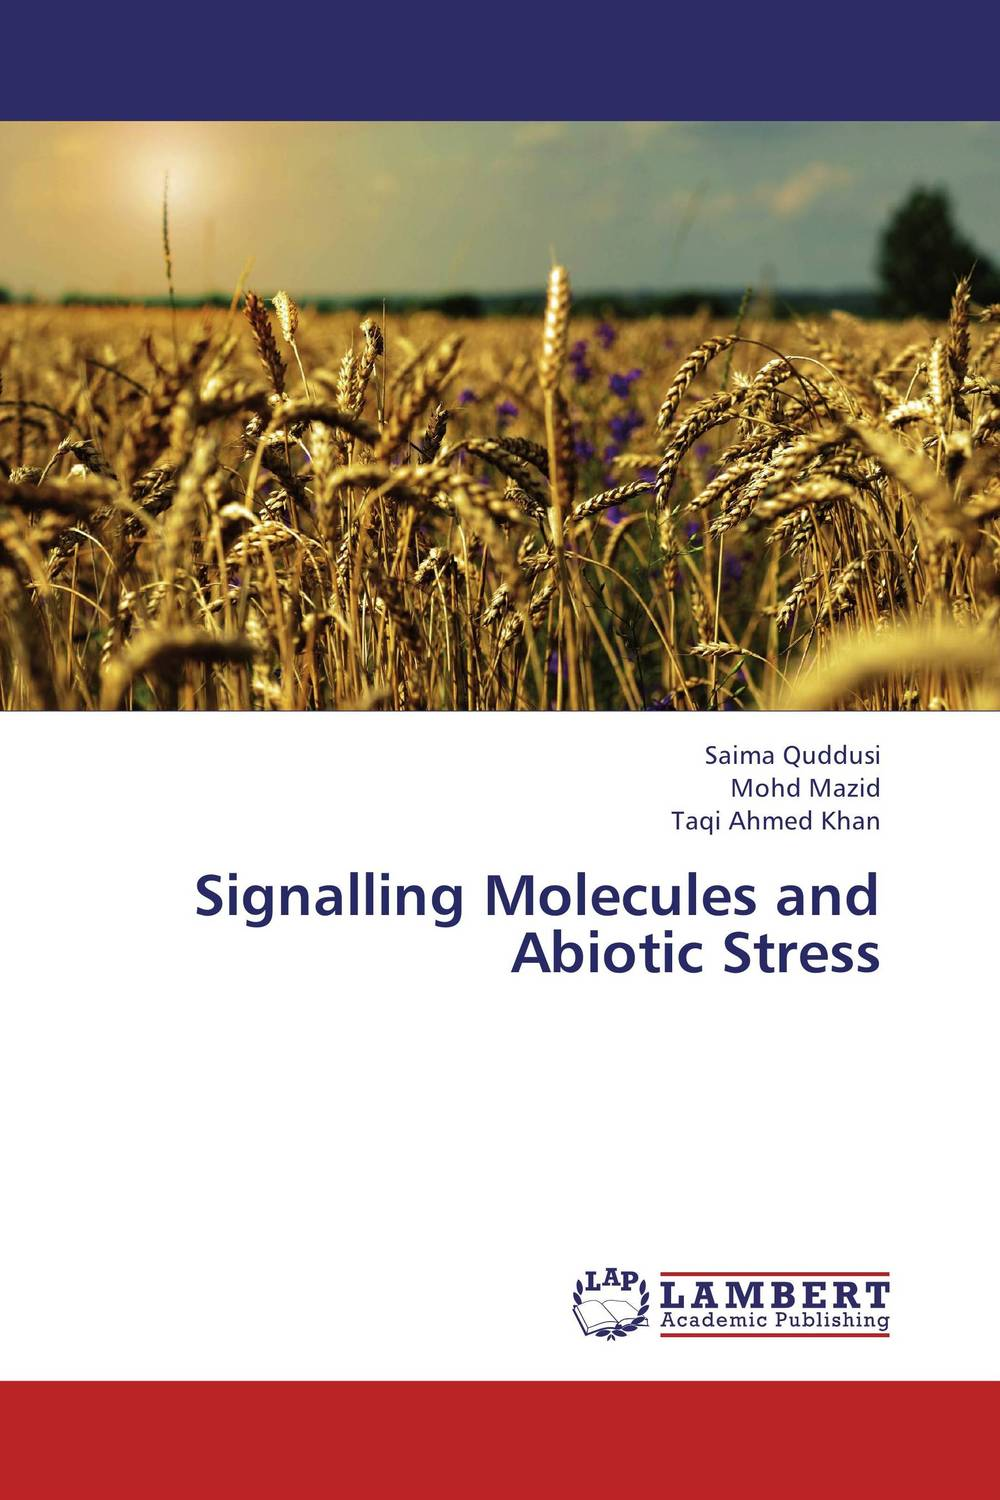 Signalling Molecules and Abiotic Stress dr david m mburu prof mary w ndungu and prof ahmed hassanali virulence and repellency of fungi on macrotermes and mediating signals